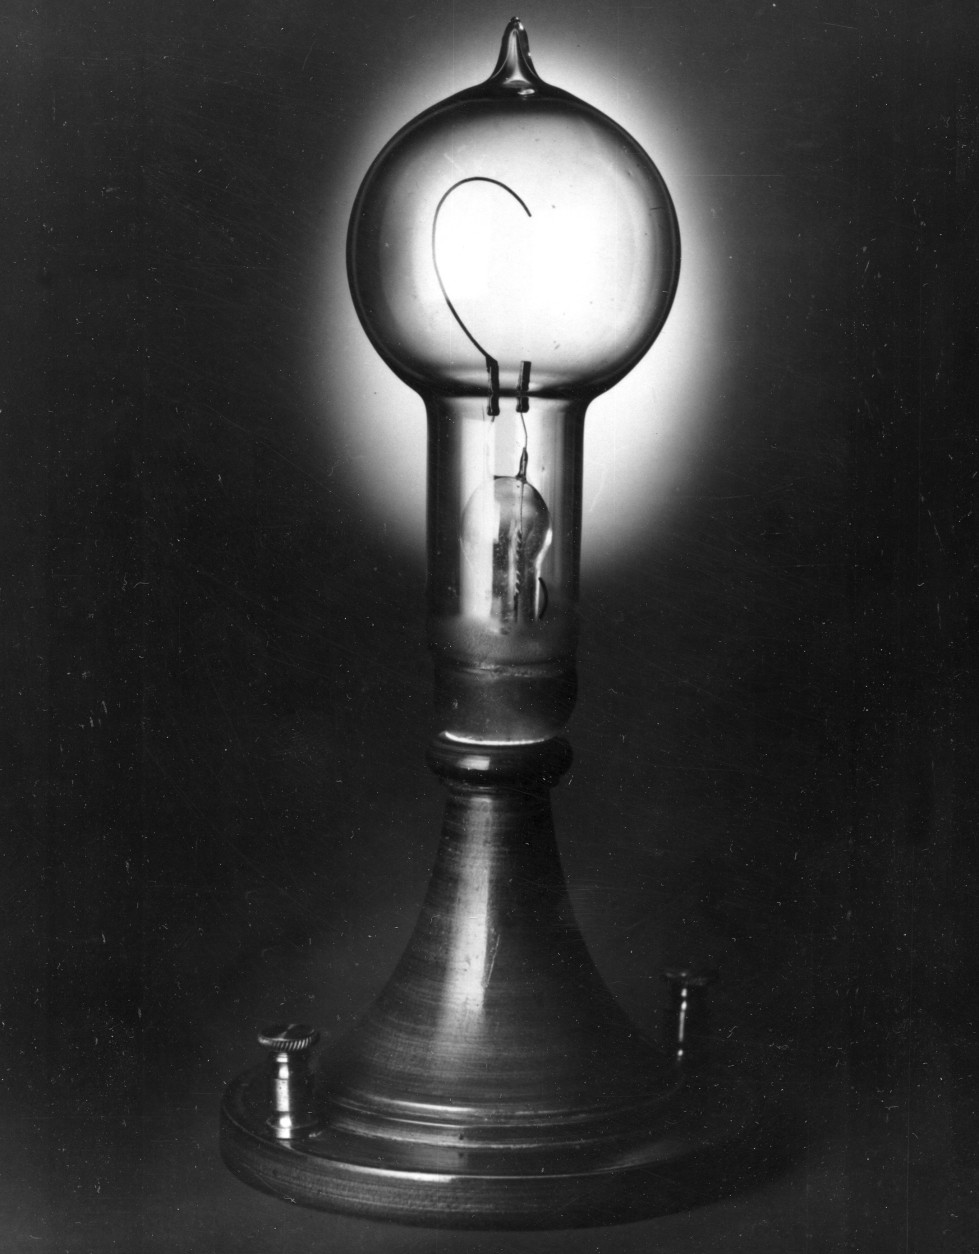 Thomas Edison's incandescent lamp, the first practical light bulb, was developed in 1879.  Edison used carbonized bamboo for the filament.  (AP Photo)